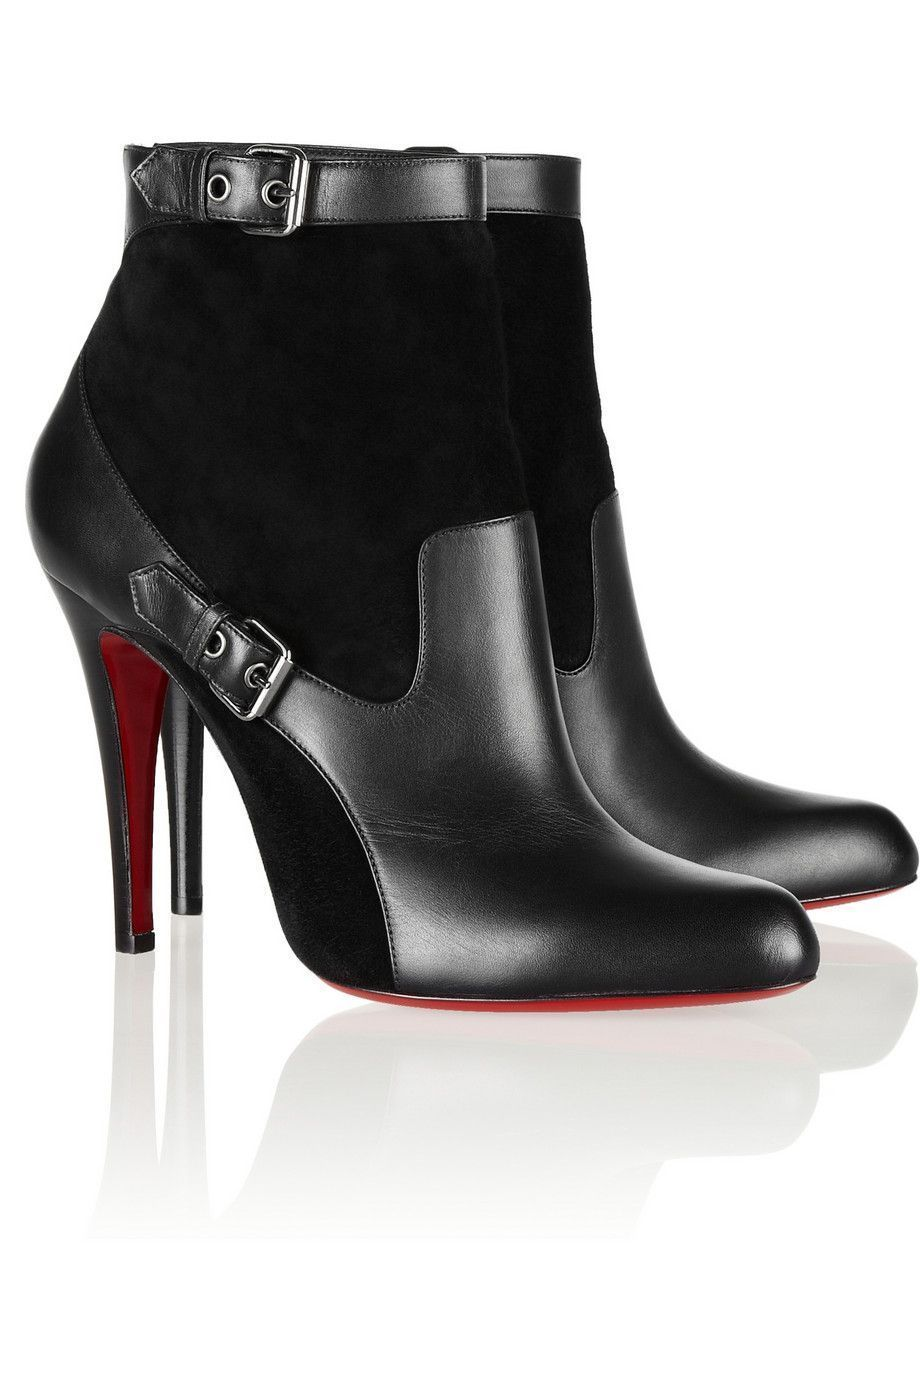 ec945a912d4 Christian louboutin Canassone 100 Buckled Suede And Leather Ankle Boots in  Black